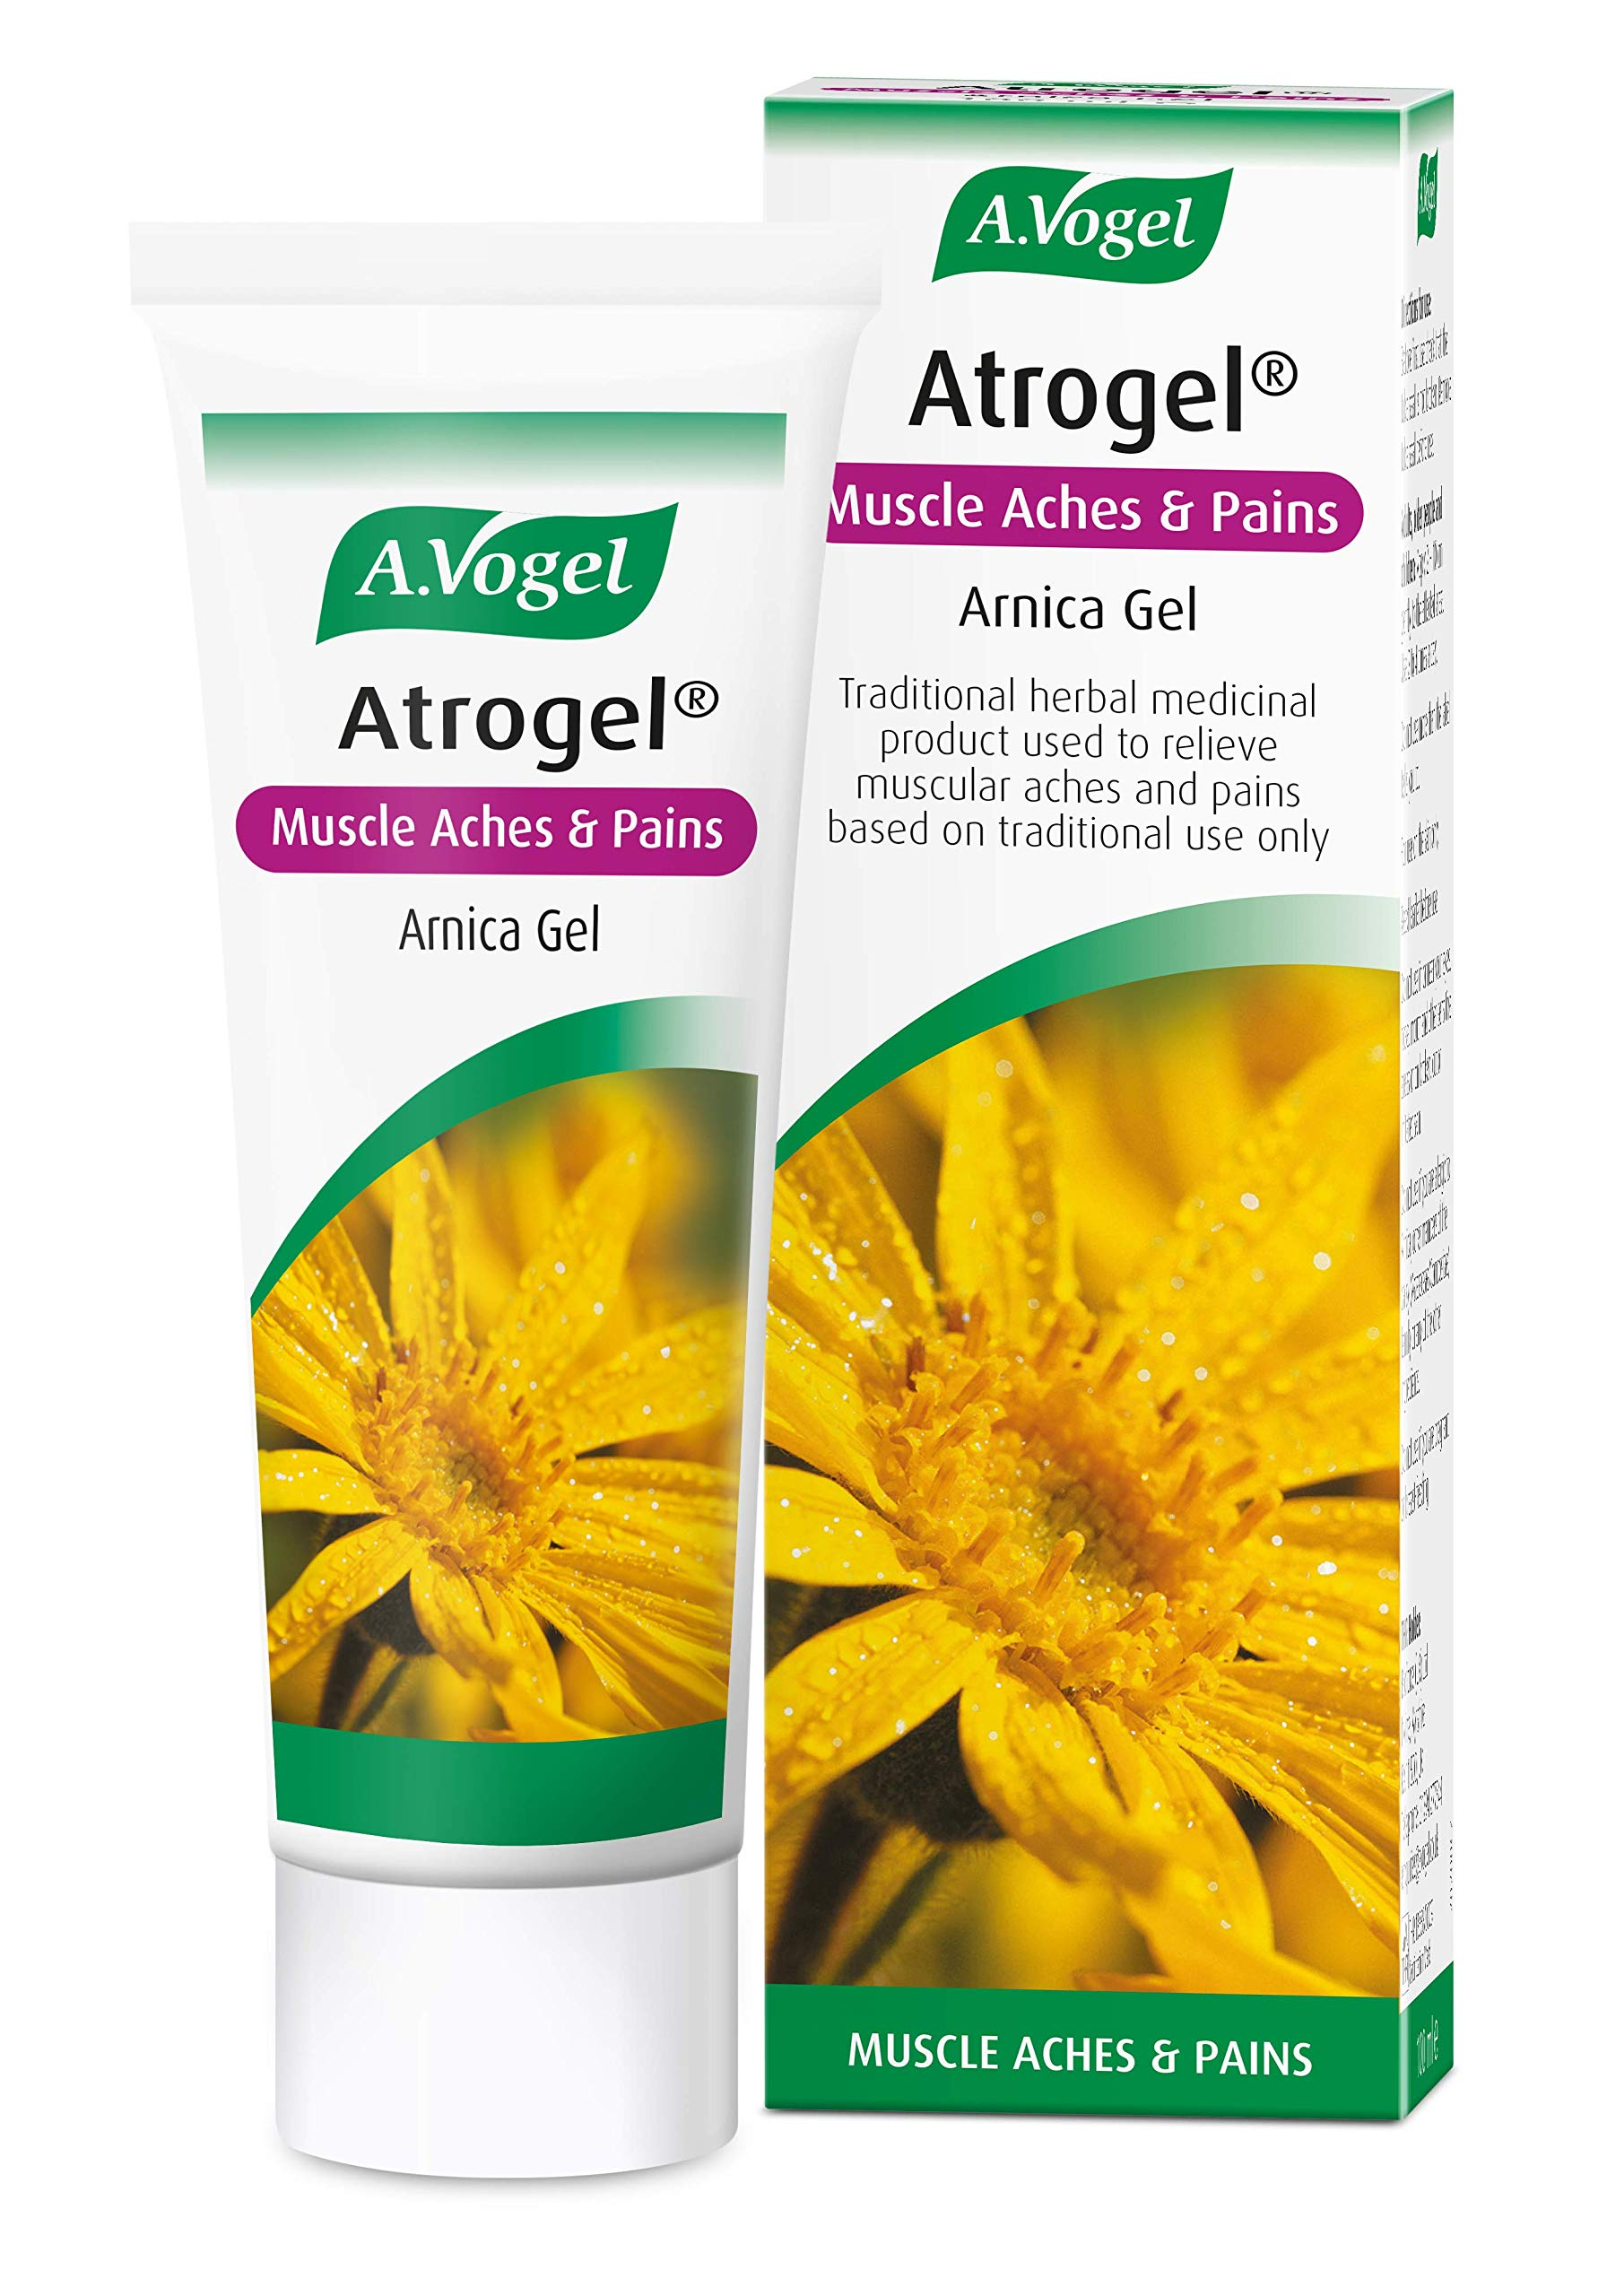 A.Vogel Atrogel   Muscle Aches & Pains   Arnica Gel for Pain Relief   100ml